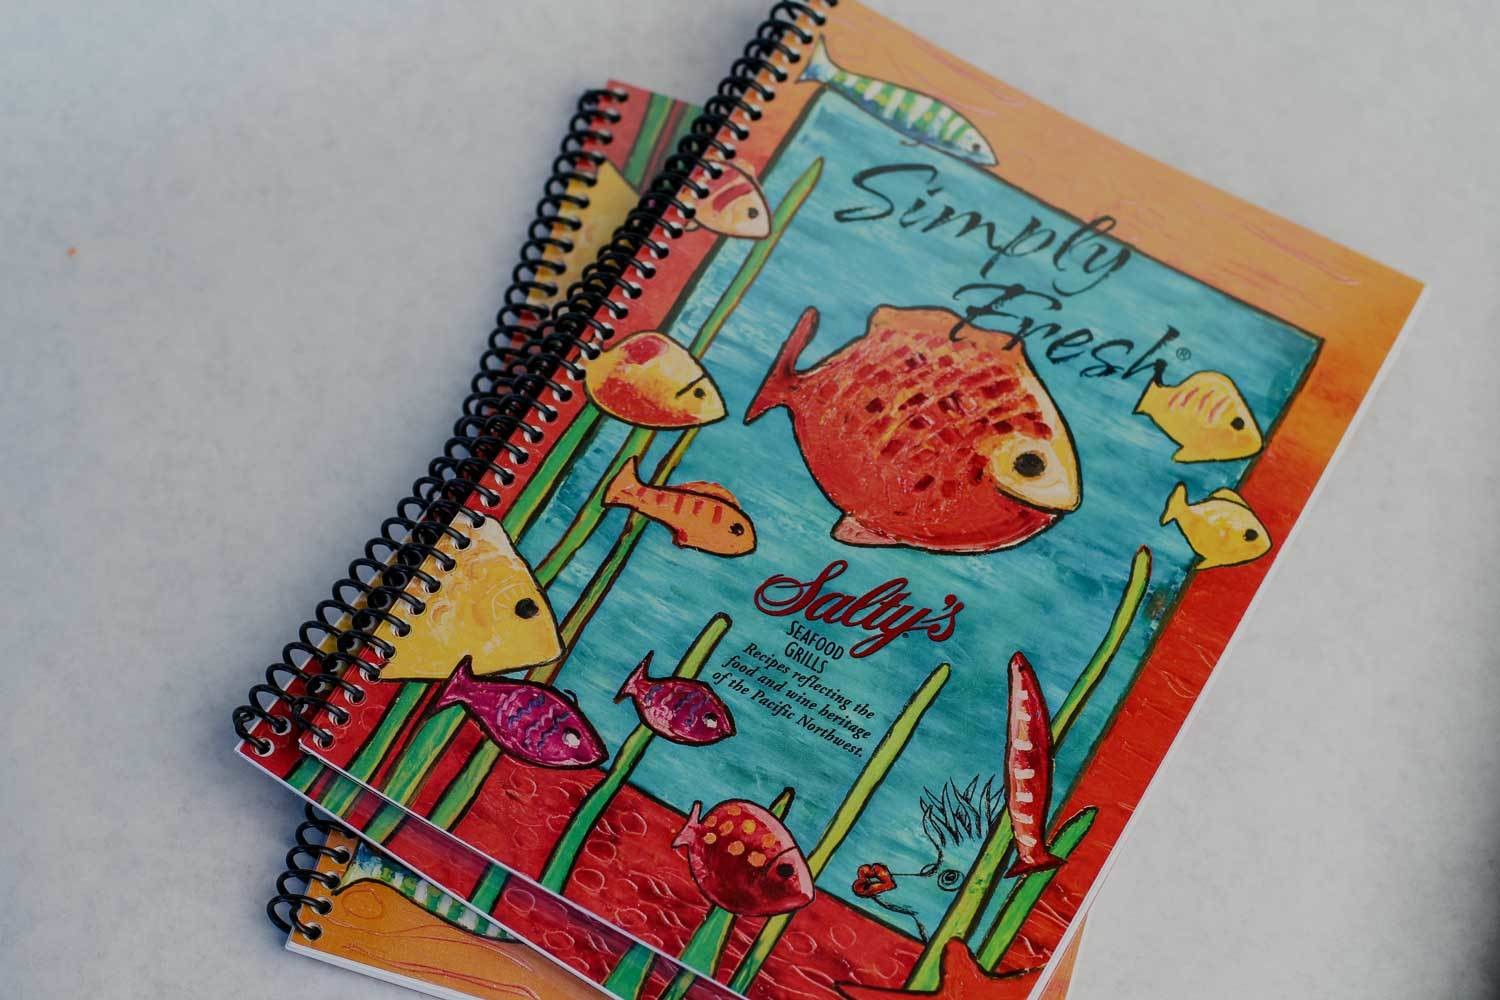 Salty's Simply Fresh Cookbook